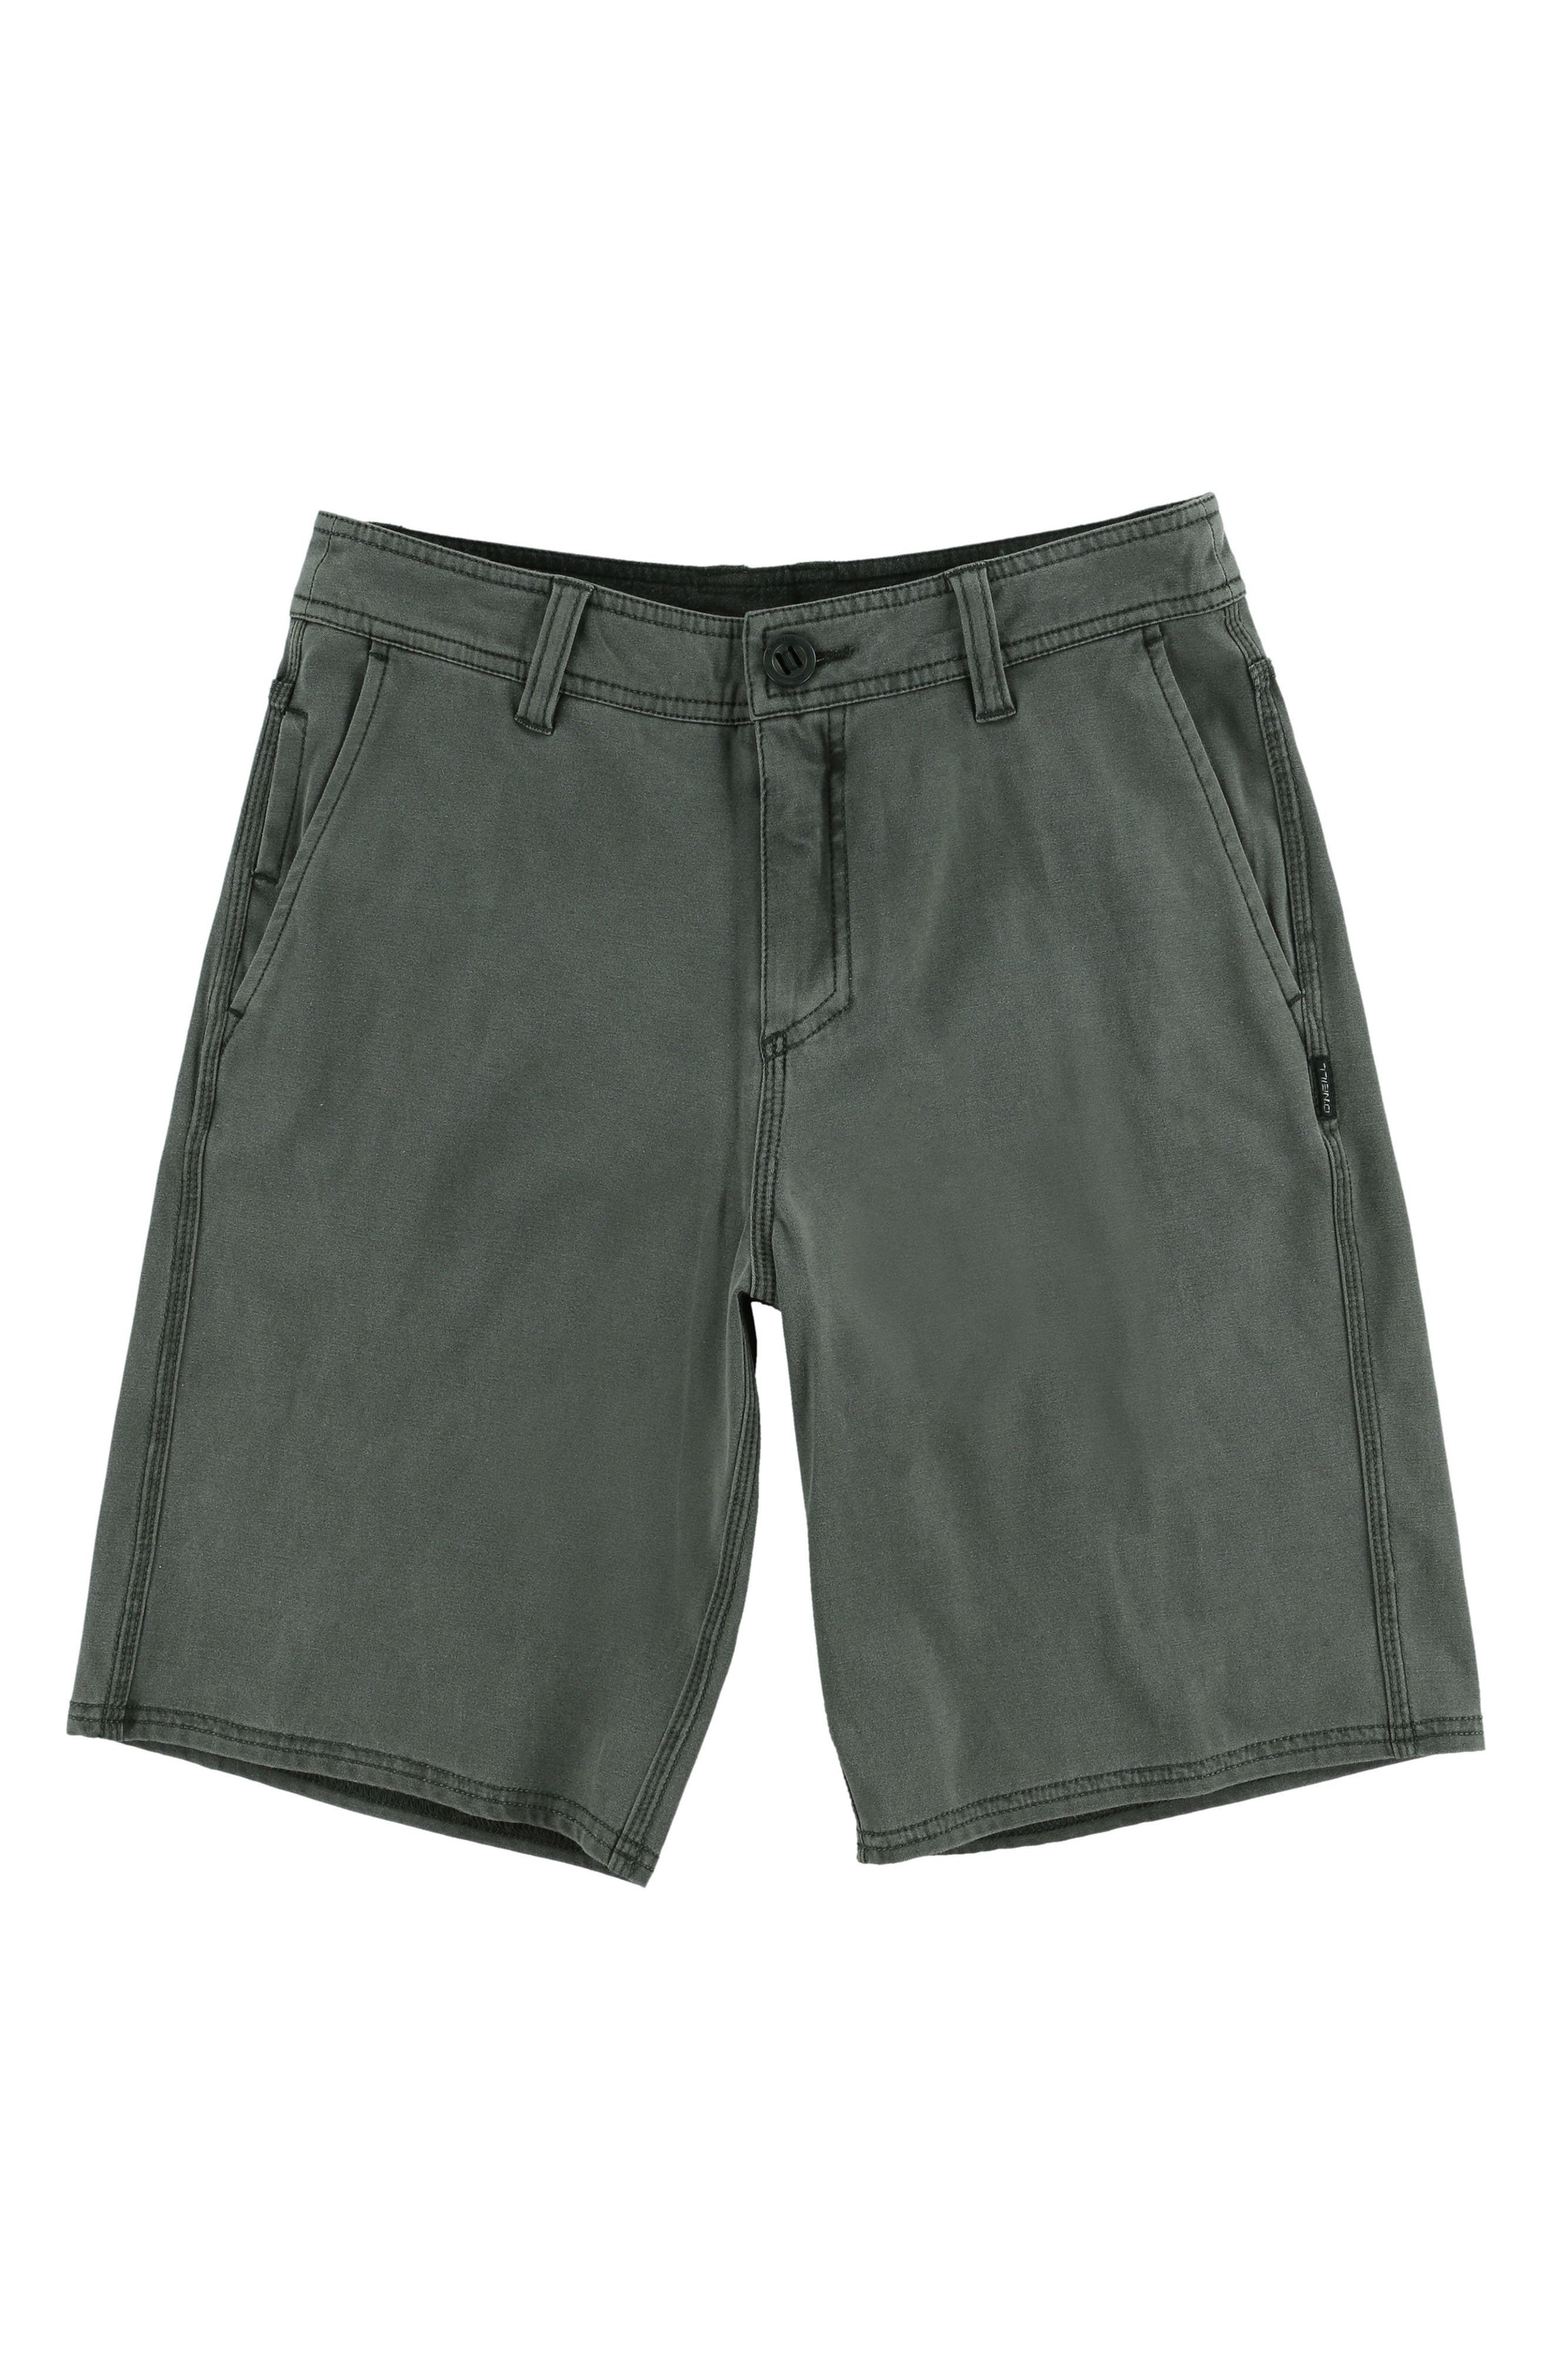 Venture Overdye Shorts,                         Main,                         color, Coffee